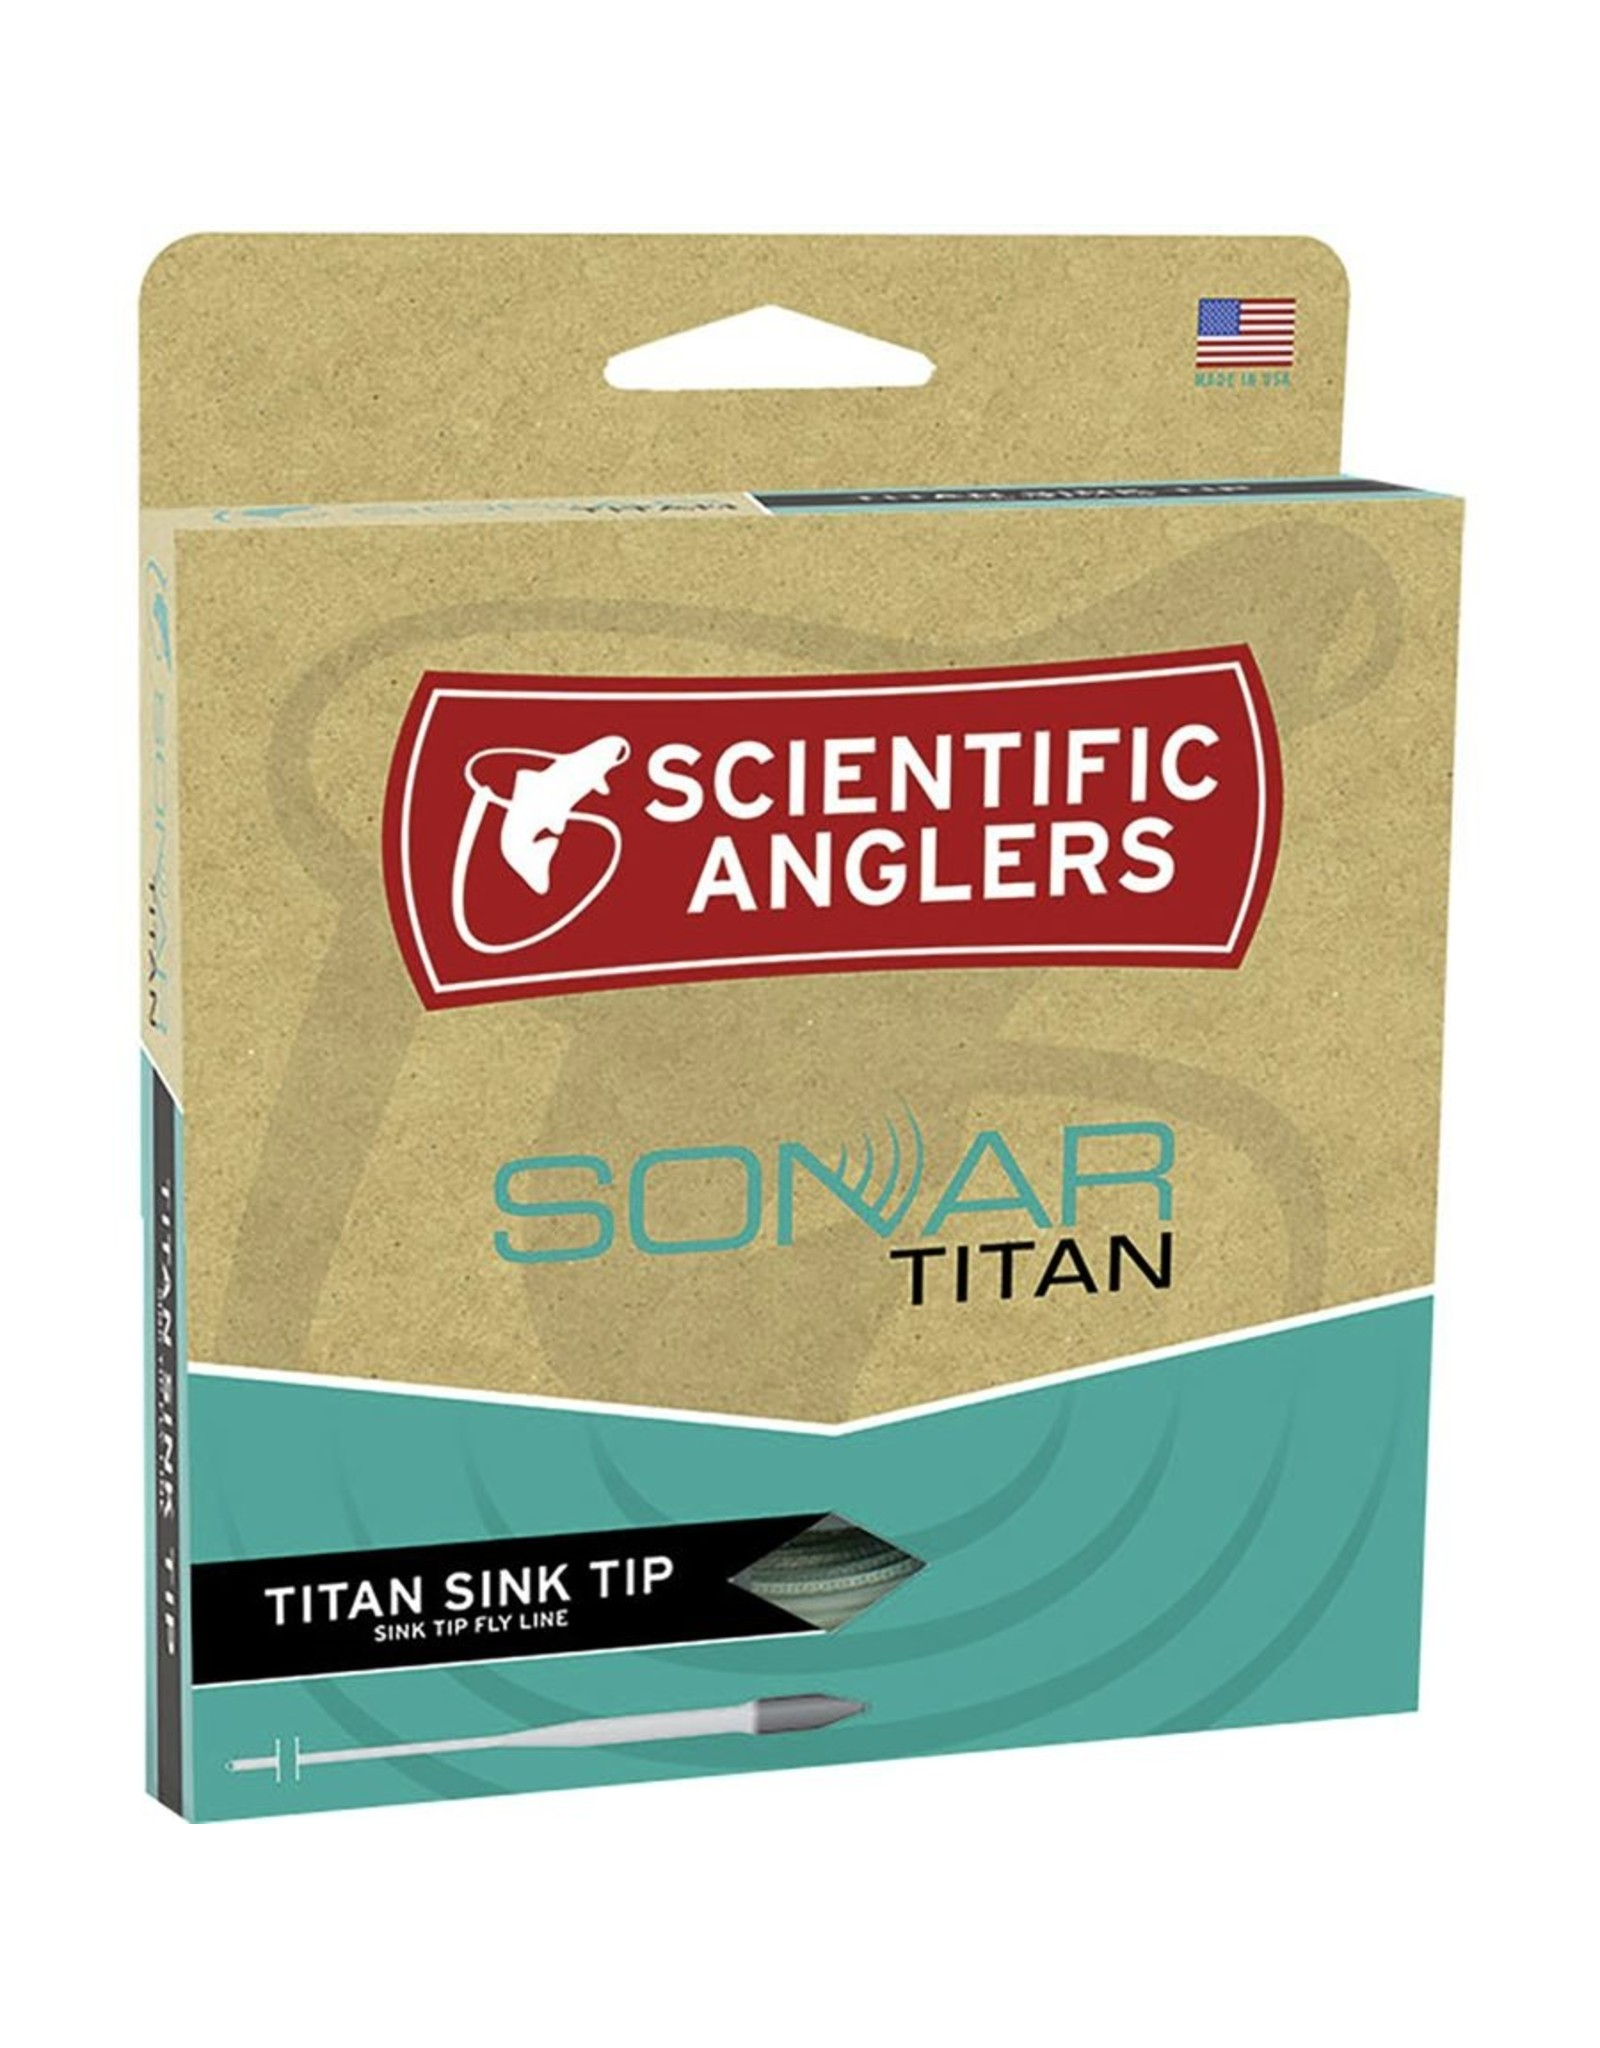 Scientific Anglers Scientific Anglers - Sonar Titan Sink Tip Type VI Fly Line